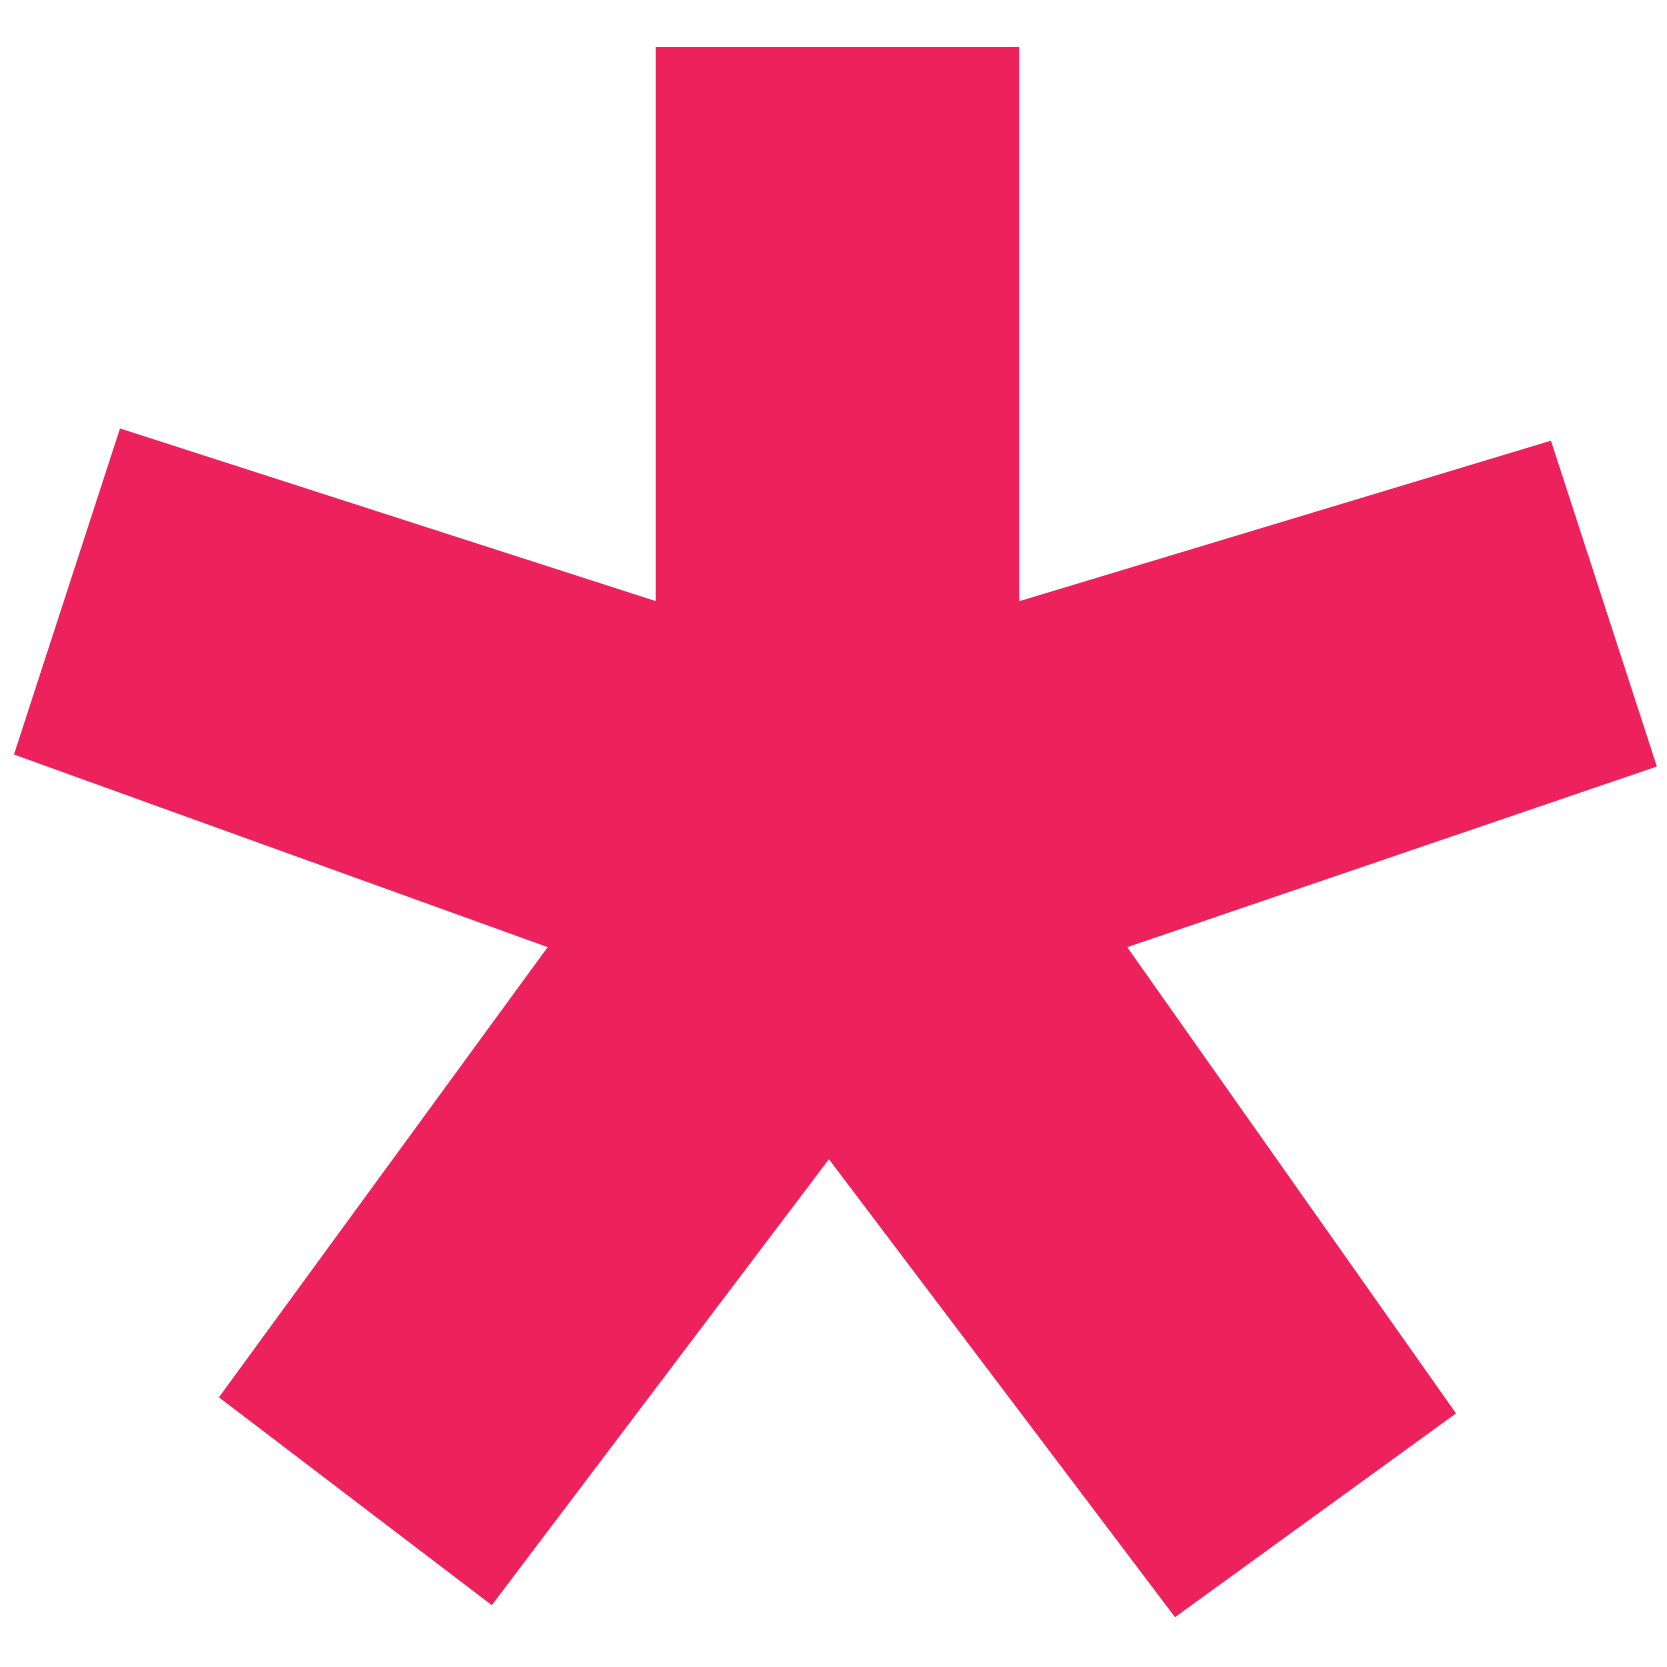 Asterisk PNG Photo PNG file